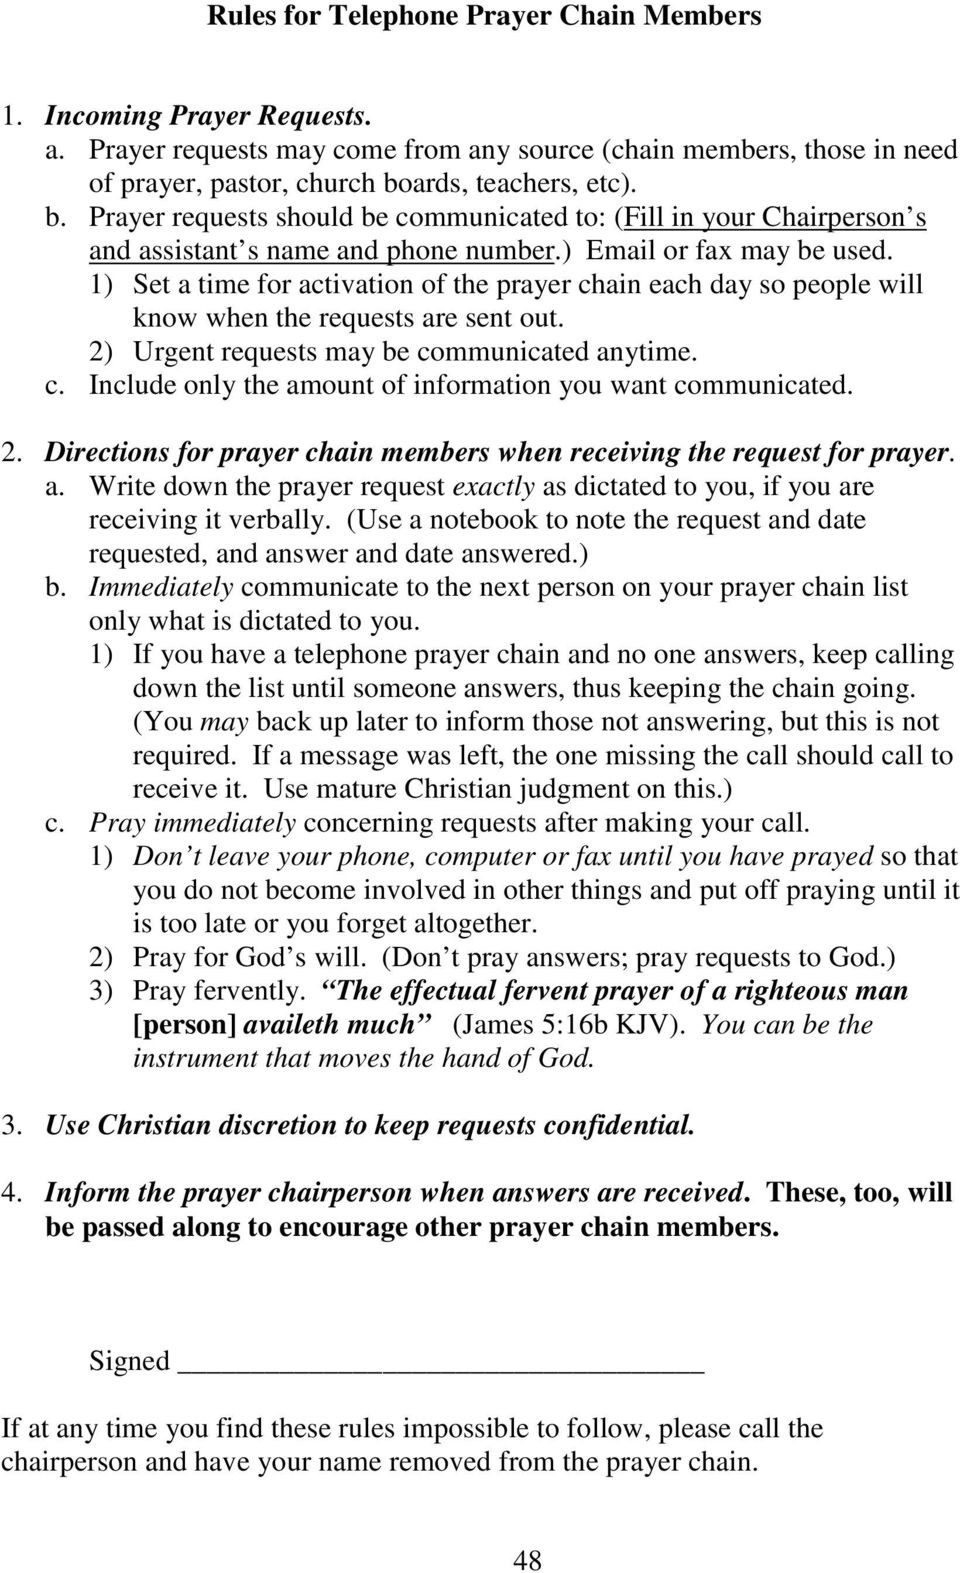 1) Set a time for activation of the prayer chain each day so people will know when the requests are sent out. 2) Urgent requests may be communicated anytime. c. Include only the amount of information you want communicated.